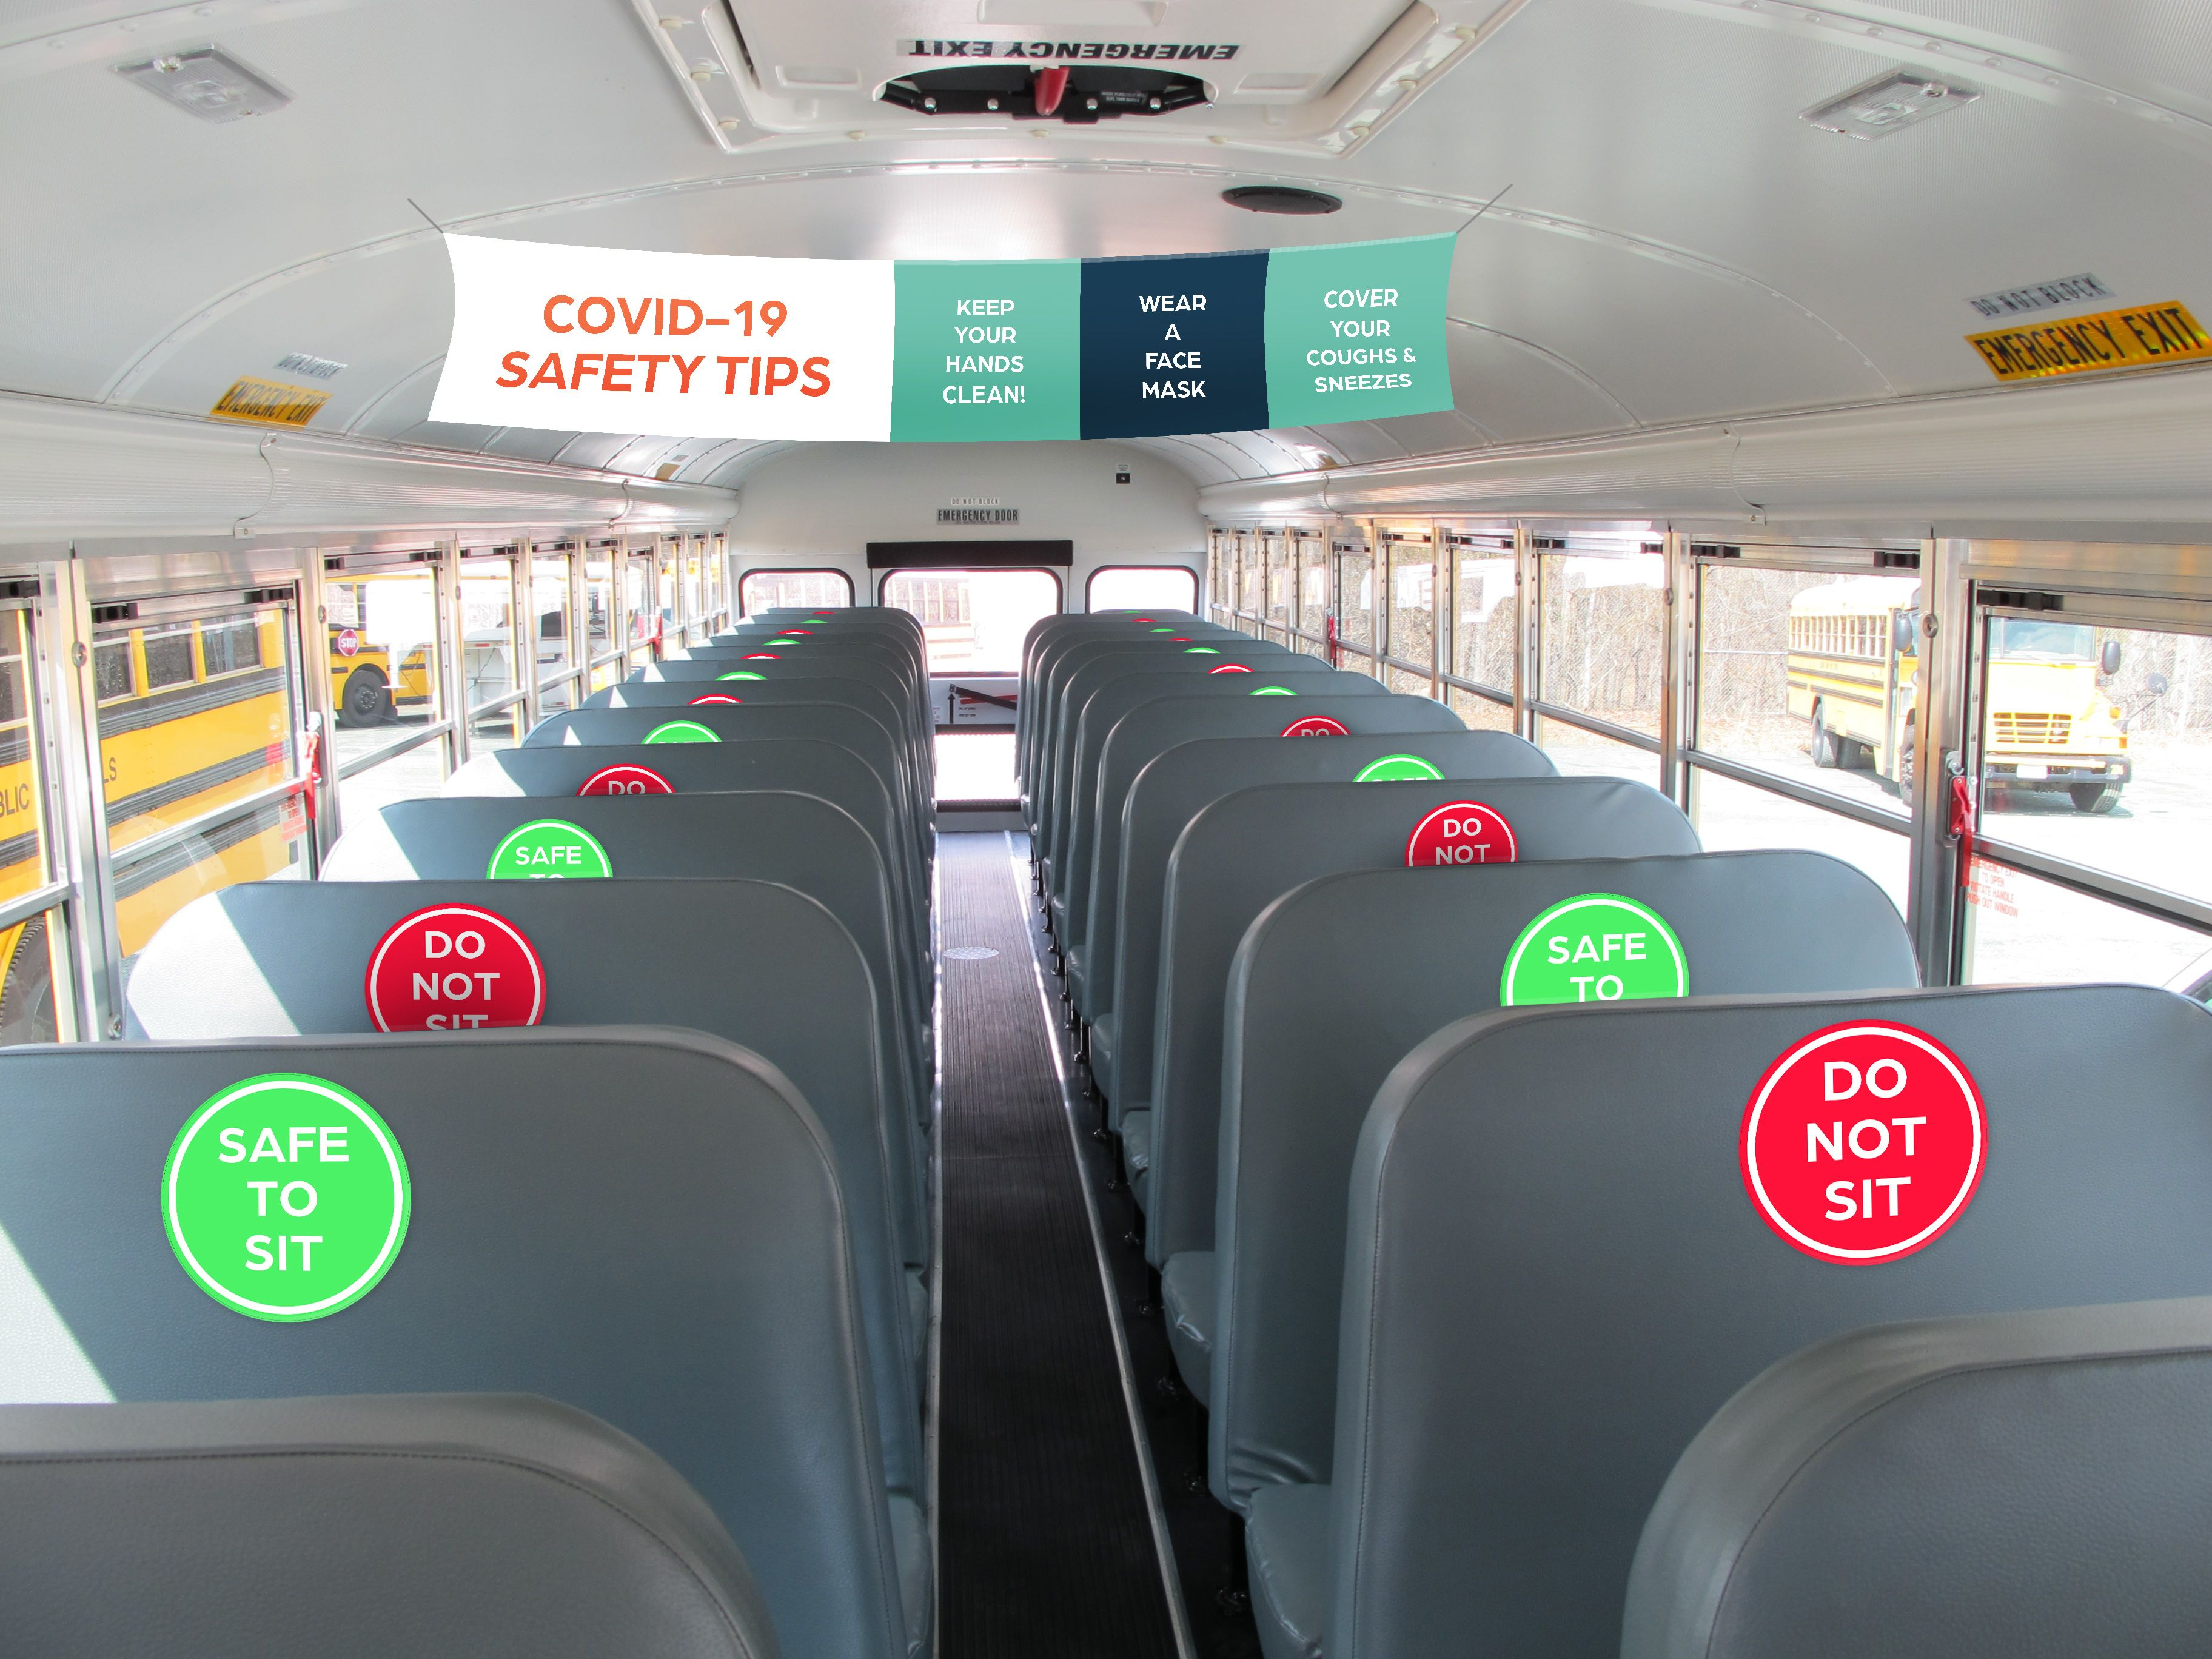 School Bus Interior with Social Distancing Graphics and Hygiene Signs